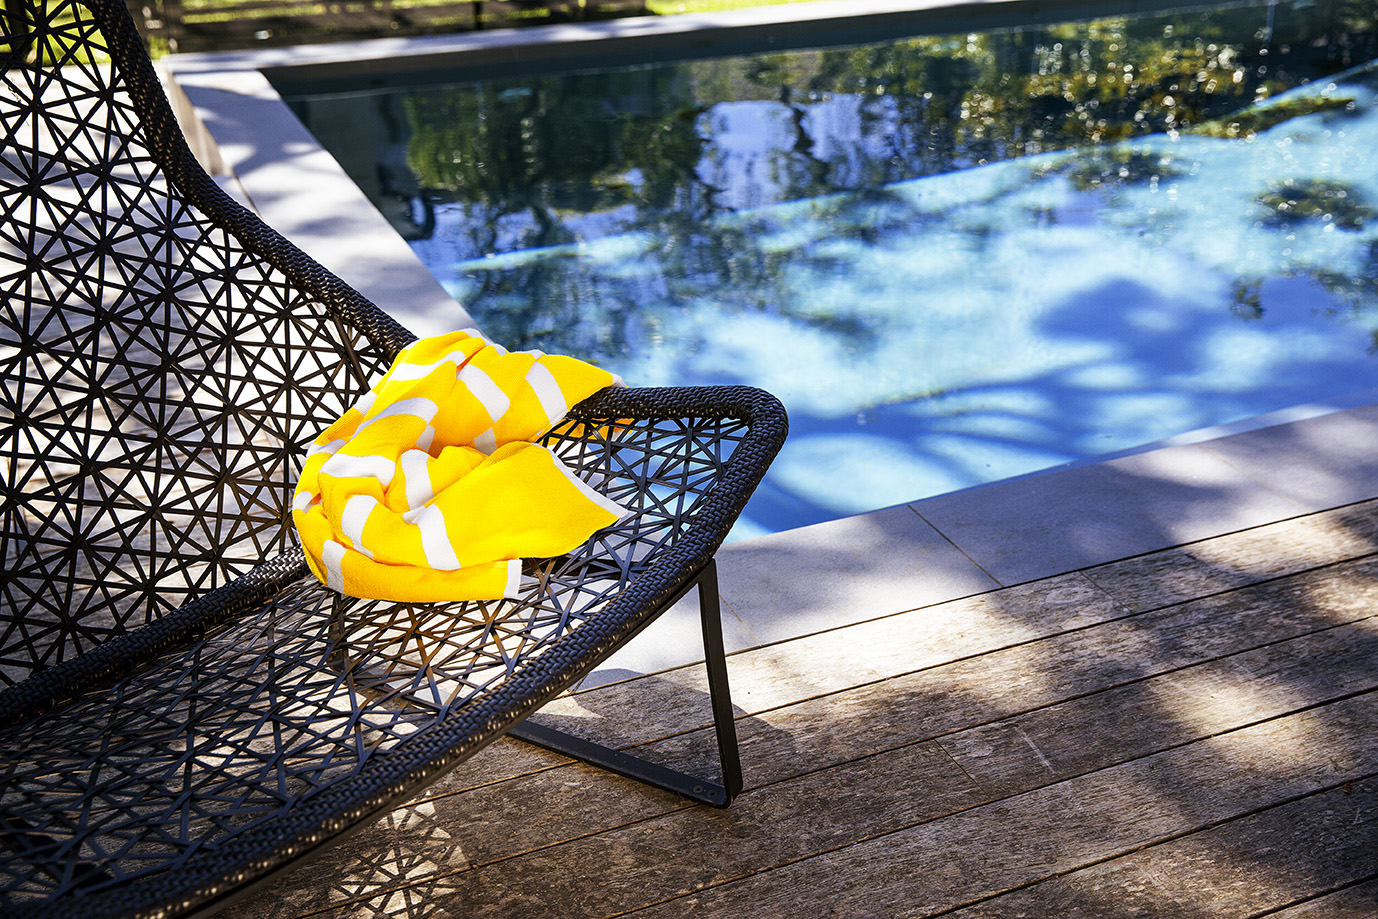 Poolside image (towel) - Ray White_Know How - landscape - low res (1)